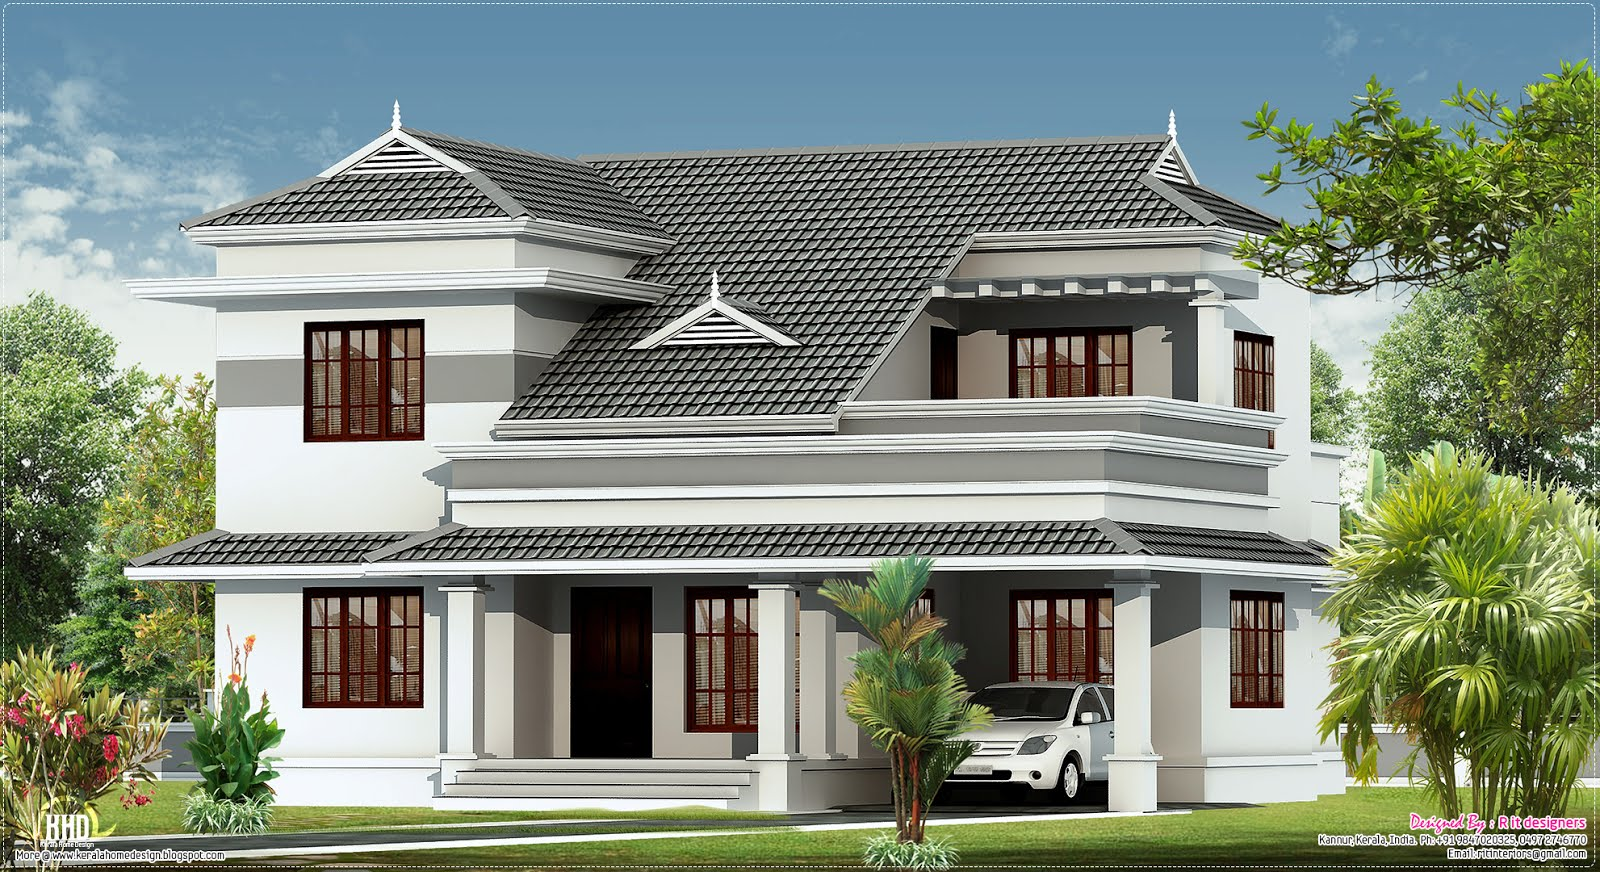 New villa design in 2250 kerala home design and for New house design